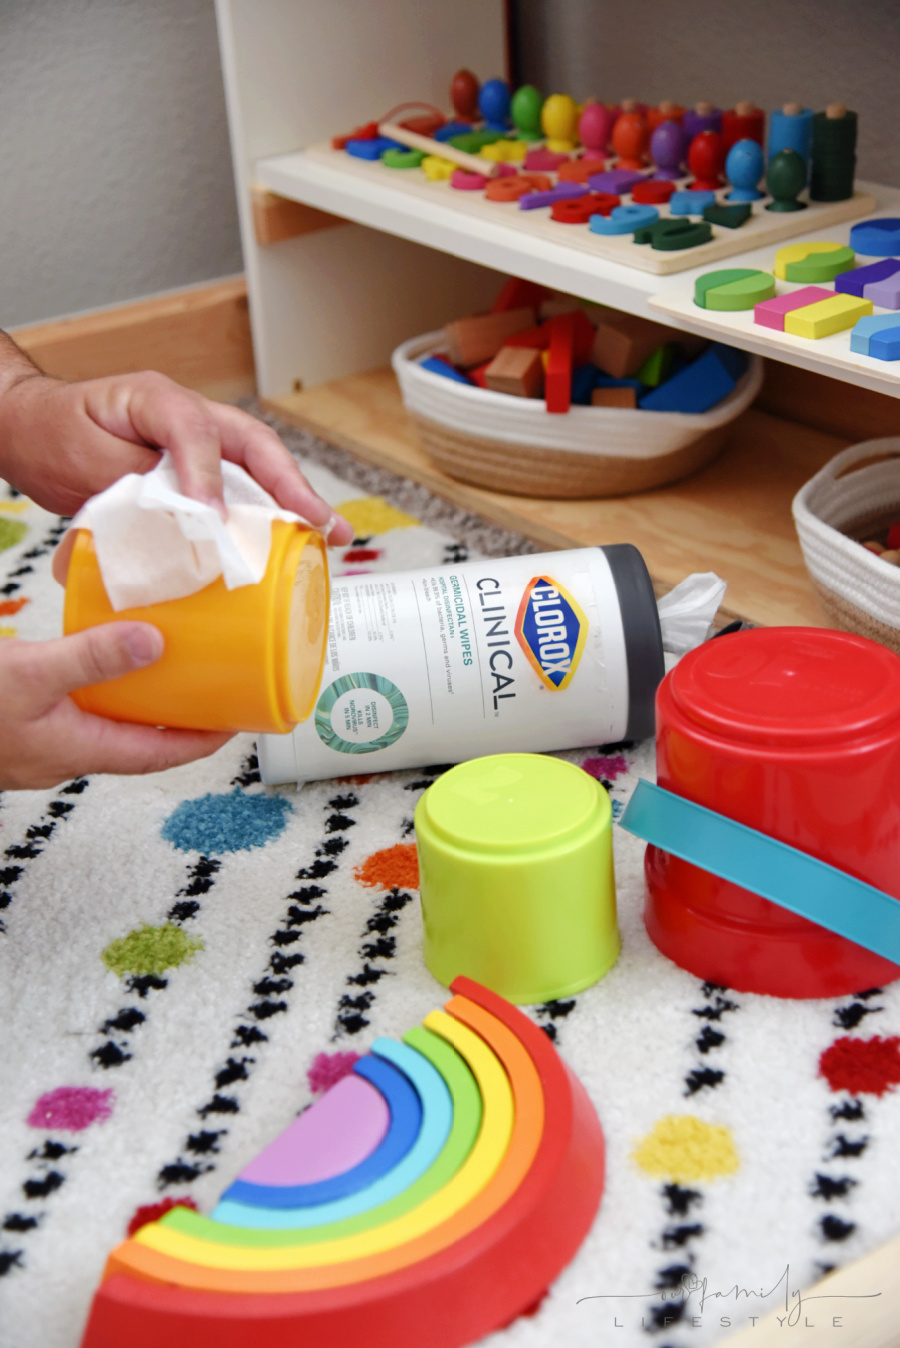 Clorox Clinical Germicidal Wipes for cleaning toys